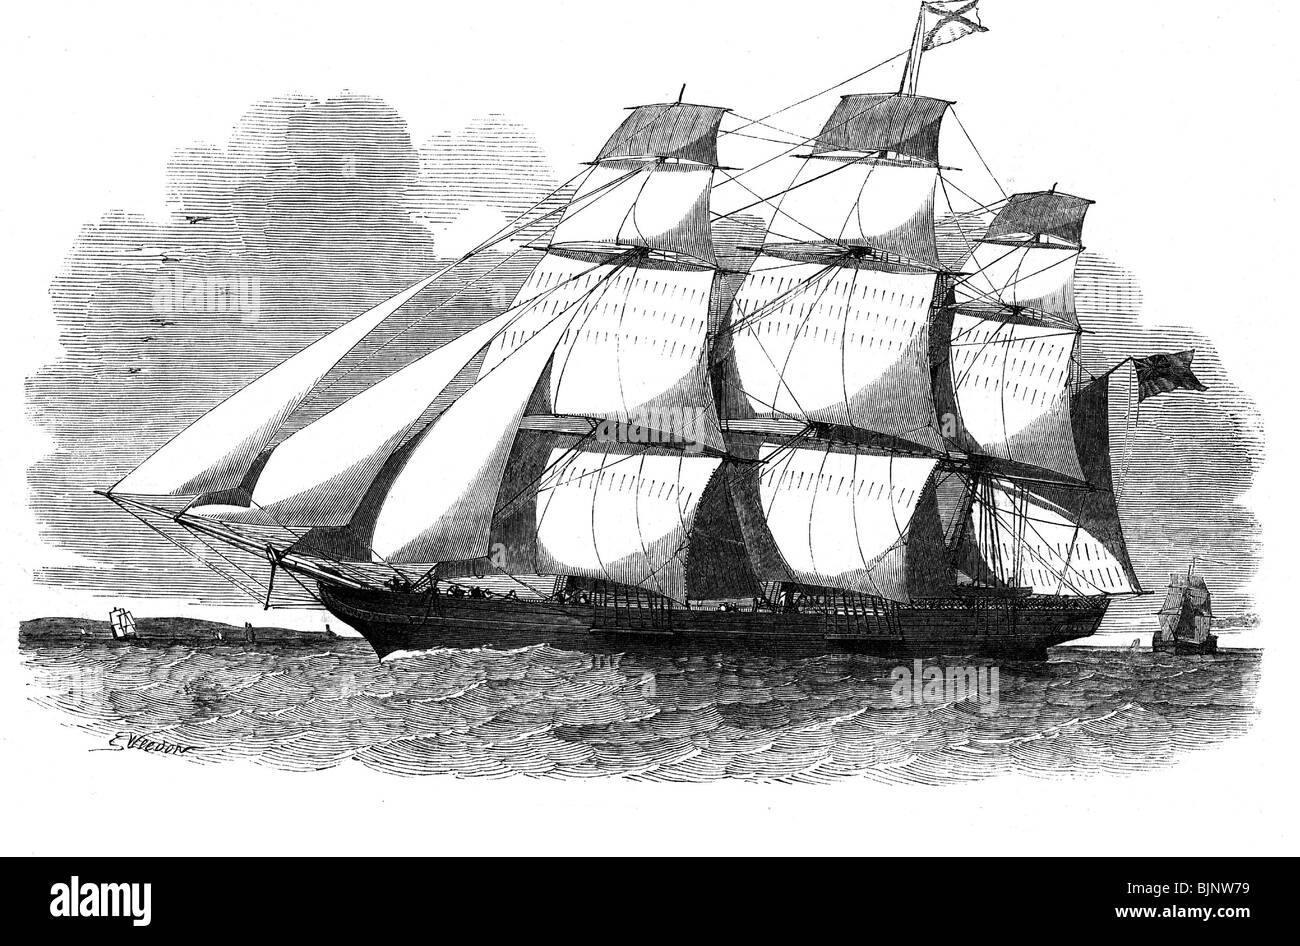 transport / transportation, navigation, sailing ships, clipper, 'Abergeldie' from Aberdeen, wood engraving - Stock Image